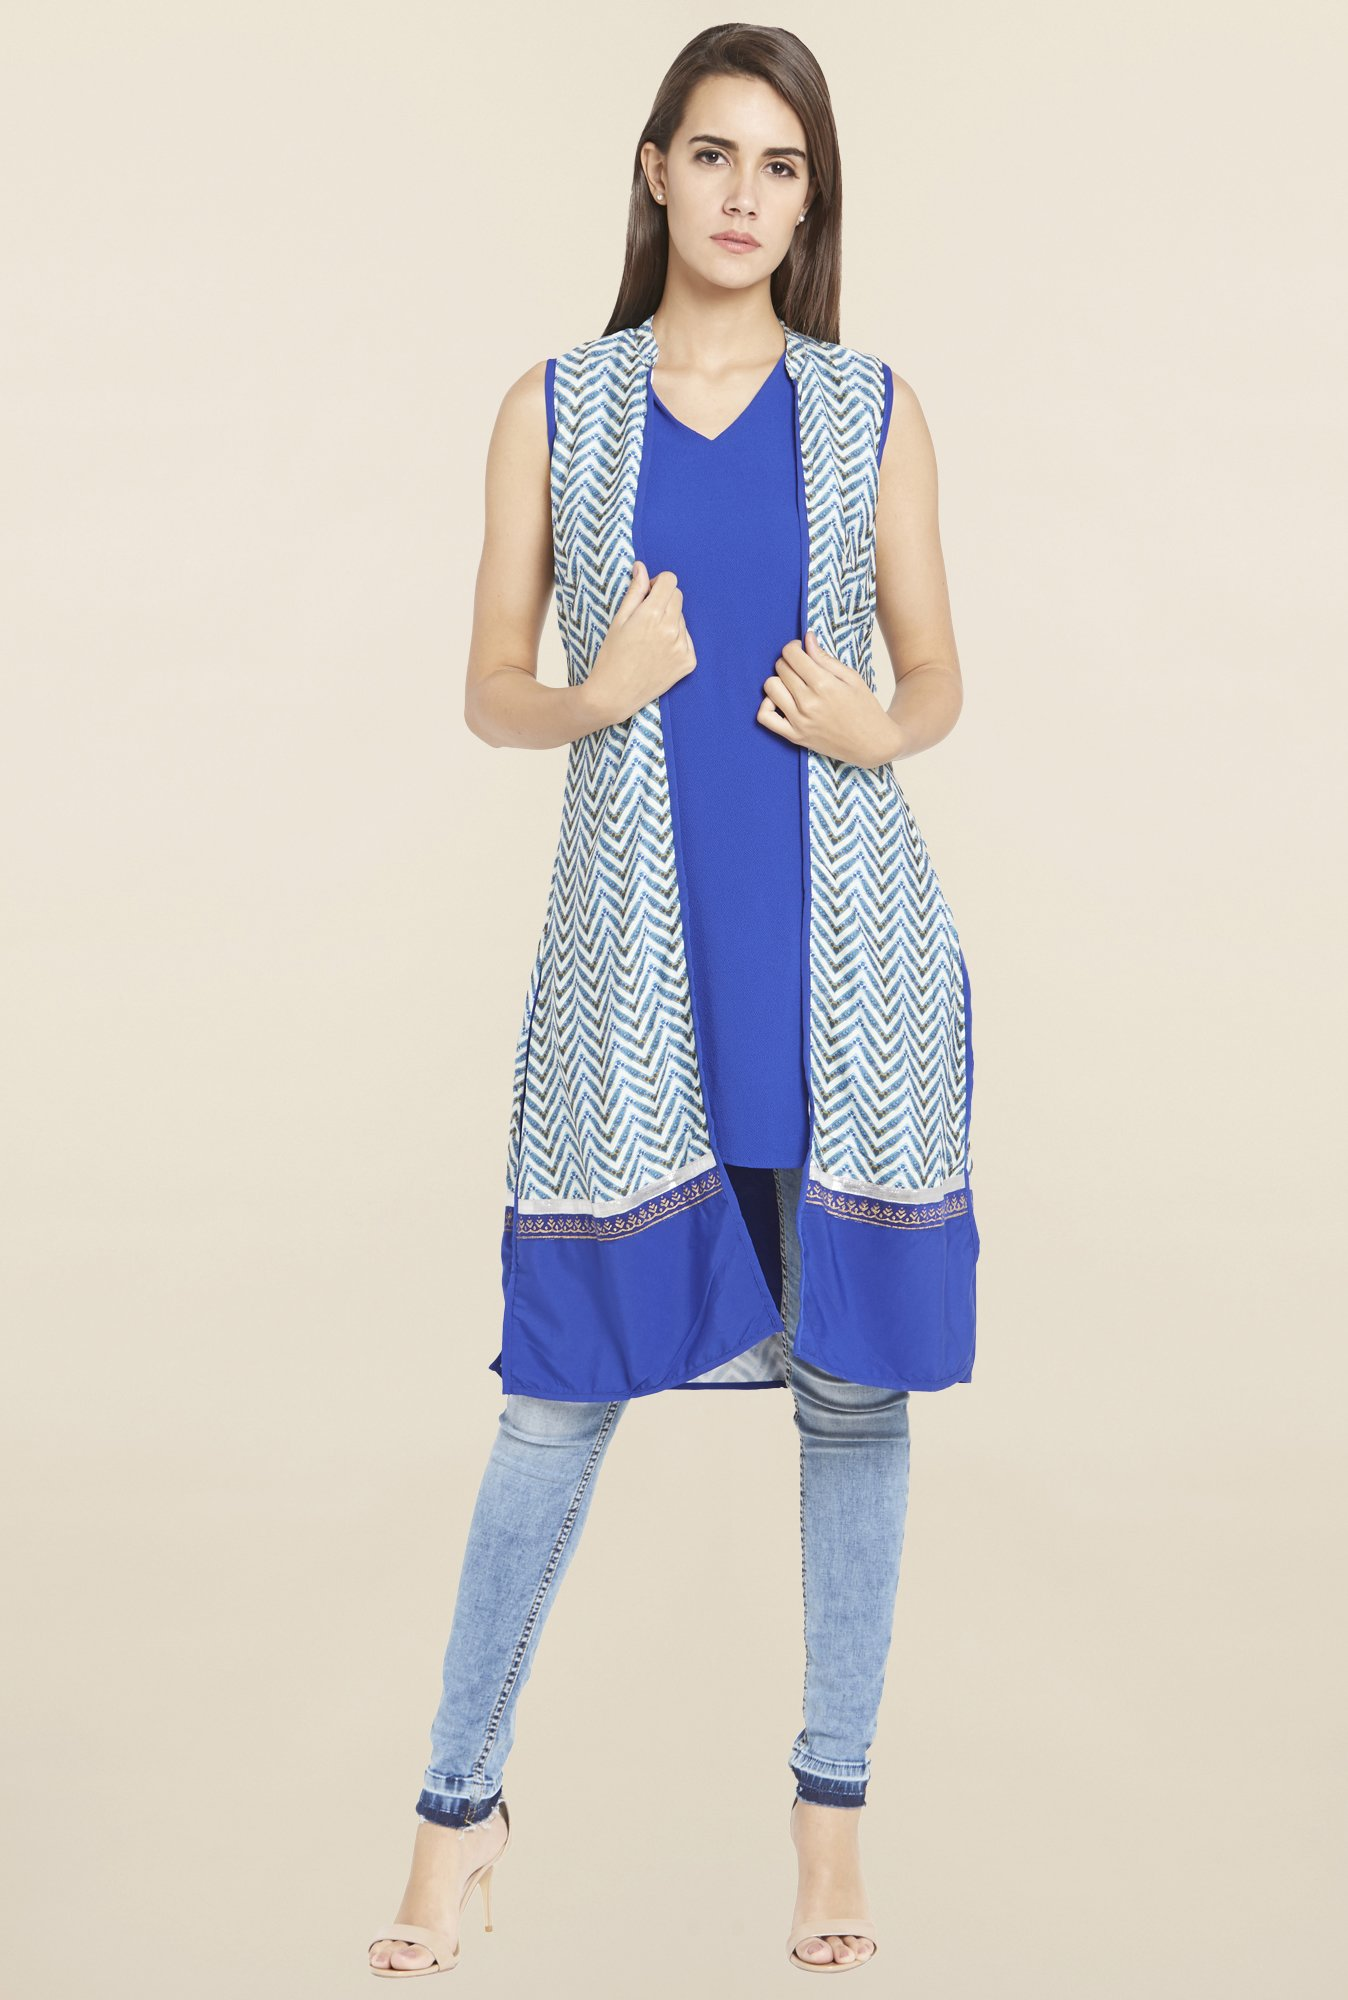 Globus Blue Chevron Print Shrug